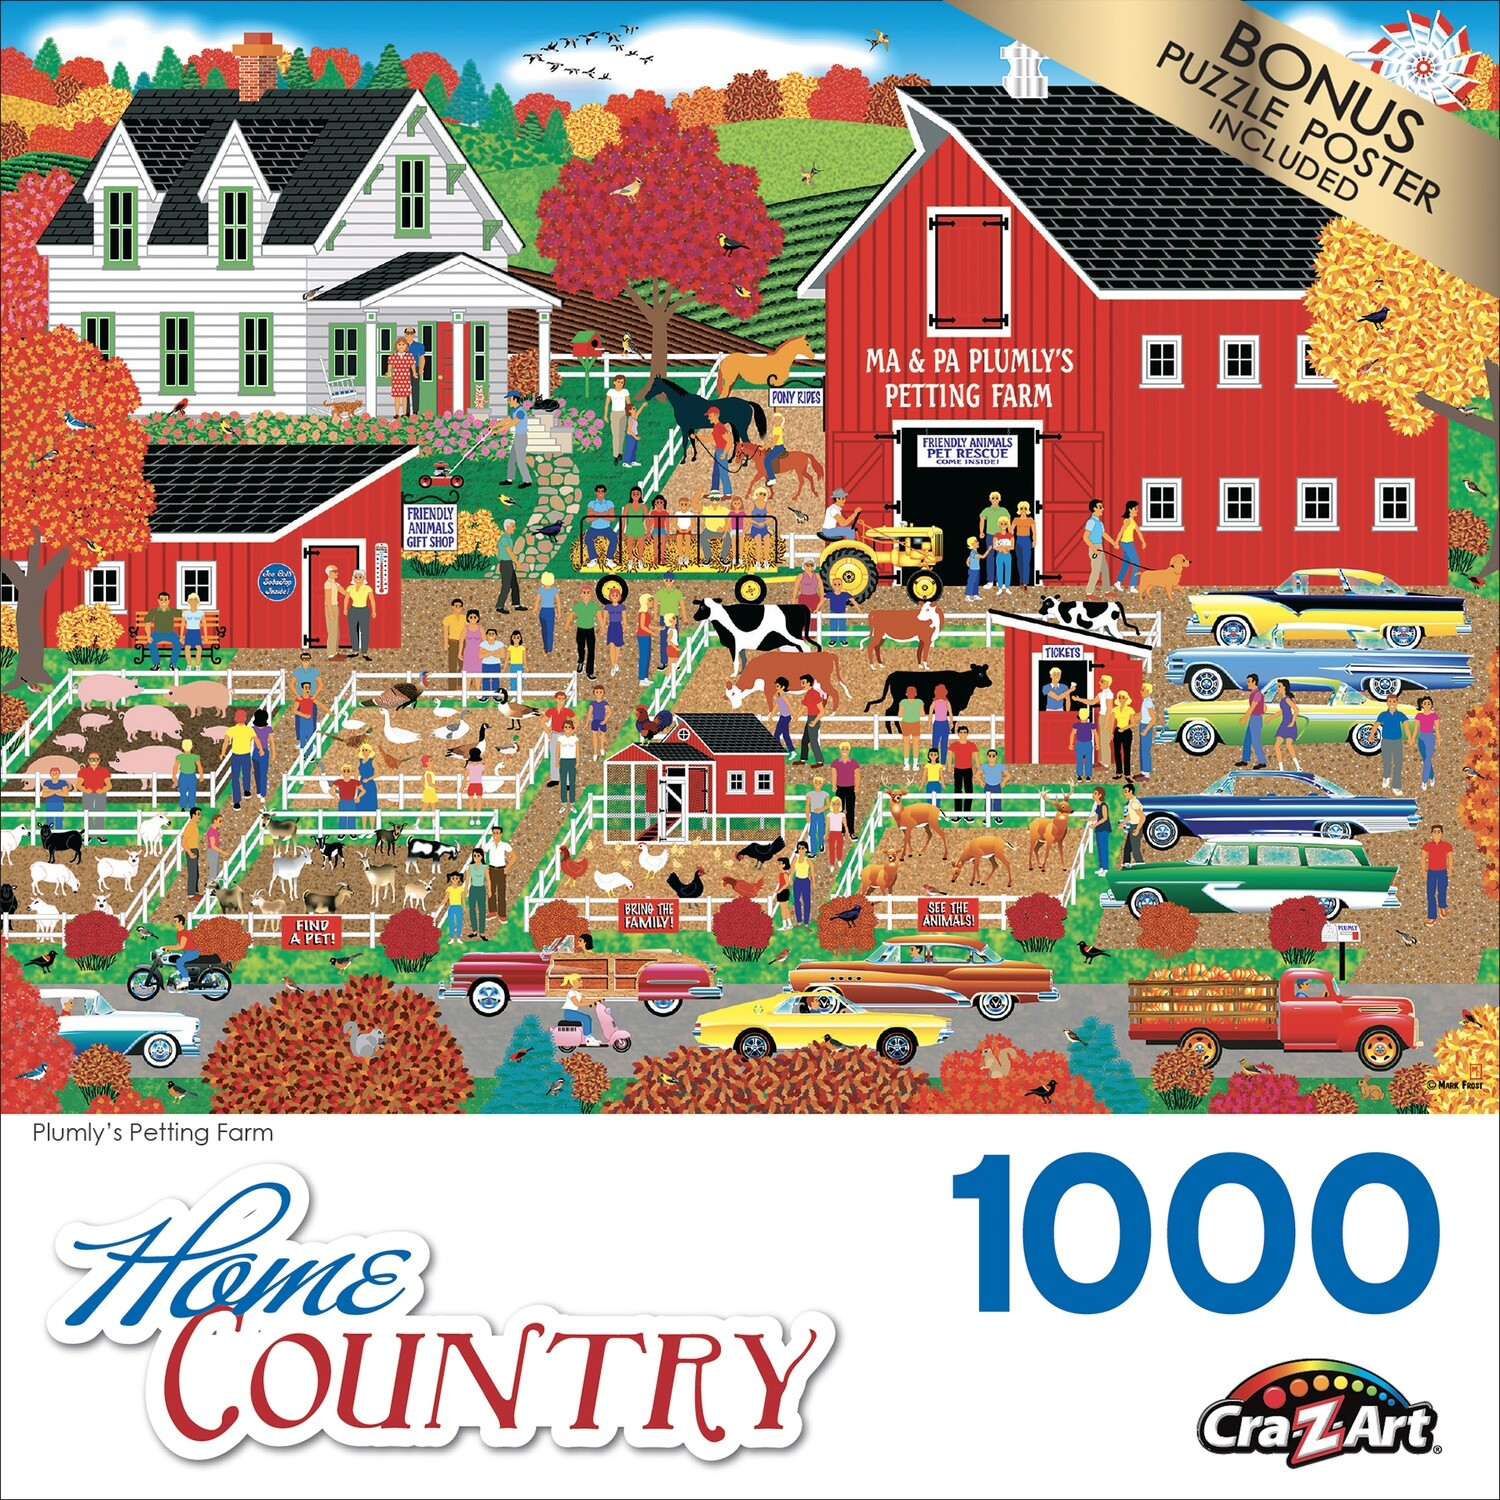 Cra-Z-Art Home Country 1000 piece Jigsaw Puzzle - Plumly's Petting Farm